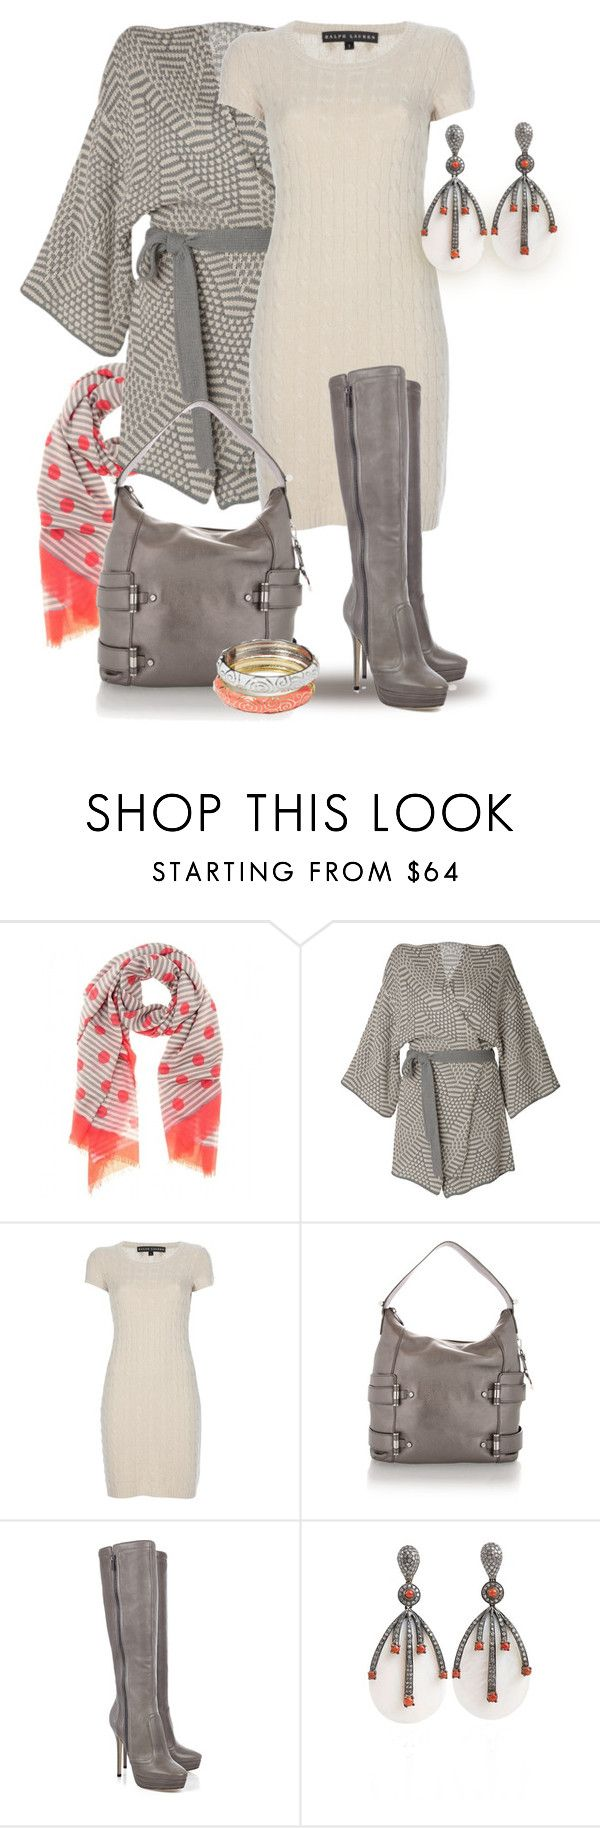 """""""Cardigan, Dress, Boots"""" by yasminasdream ❤ liked on Polyvore featuring Marc by Marc Jacobs, Raxevsky, Ralph Lauren, Michael Kors, Jimmy Choo and GUESS"""